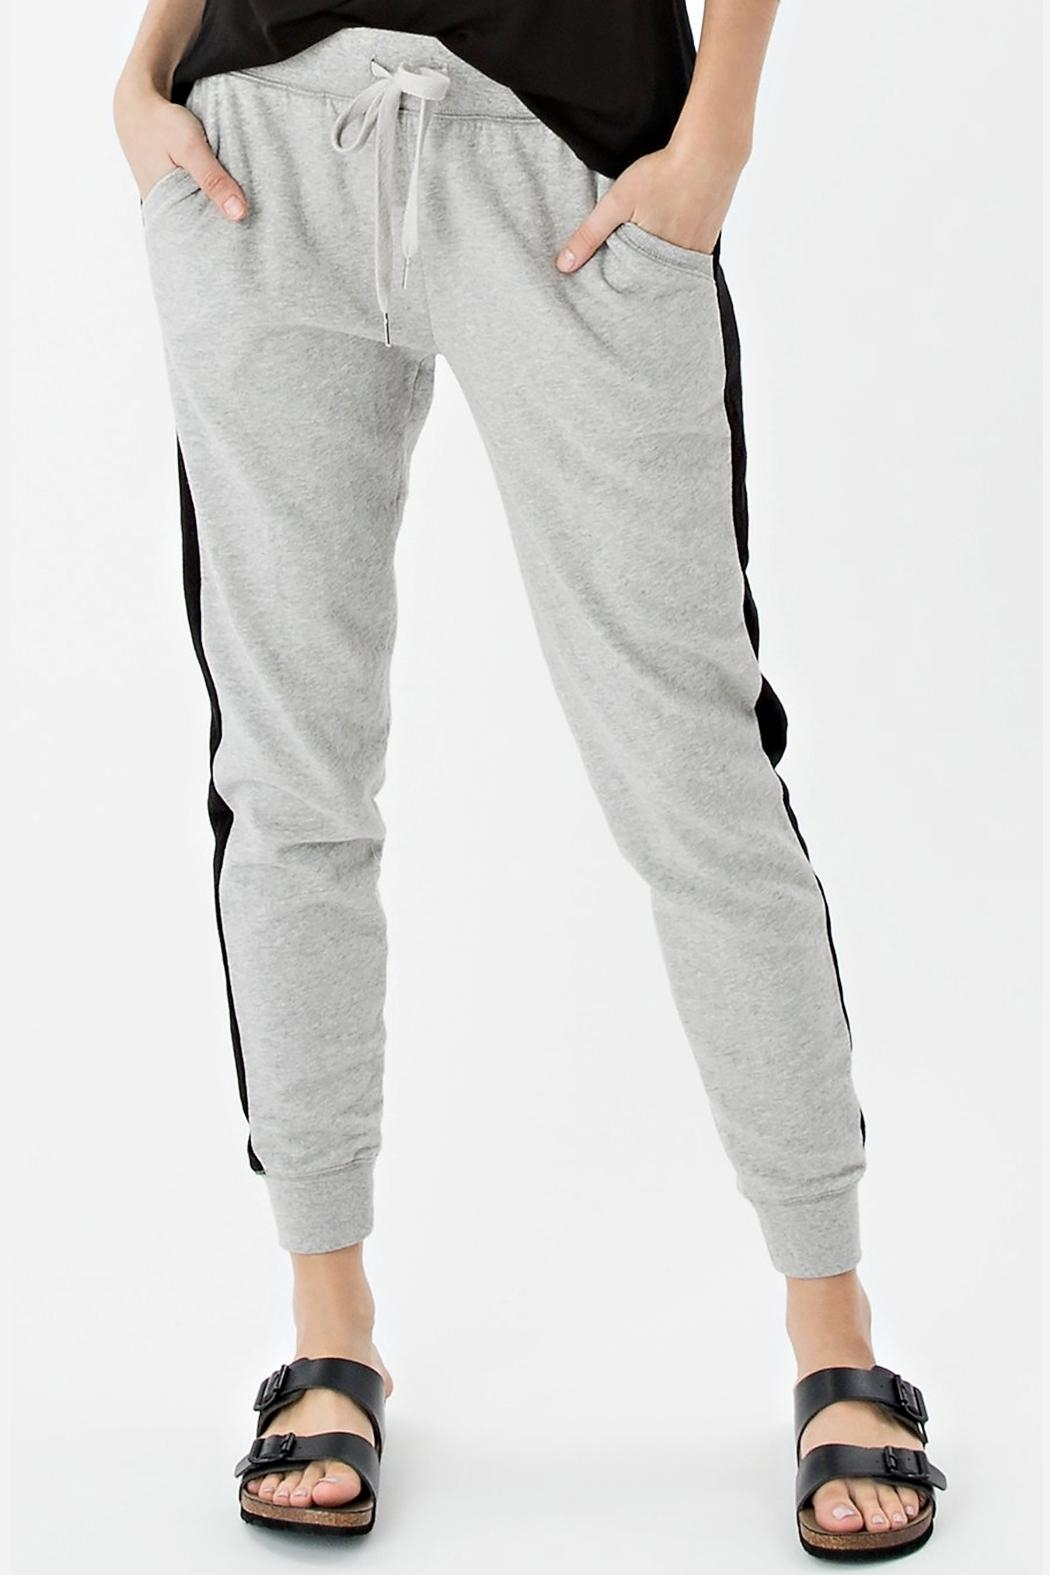 z supply Athleisure Jogger Pant - Front Cropped Image